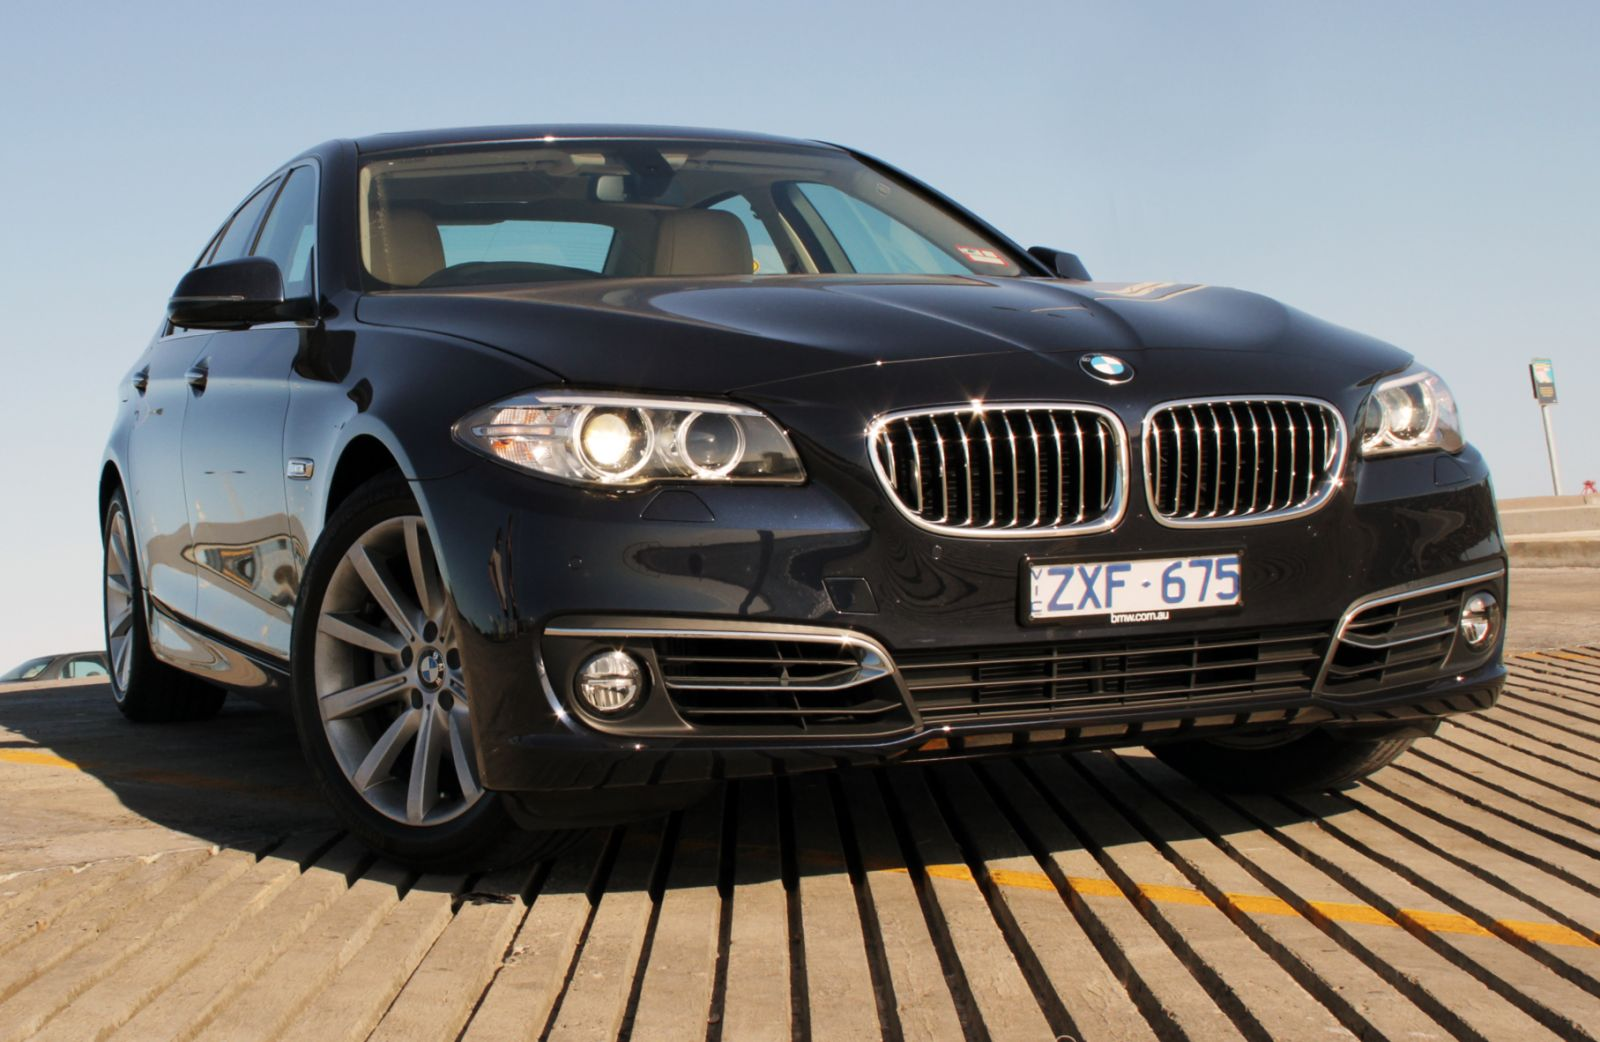 BMW 5 Series: New 2015 Options Packs Released For Australia